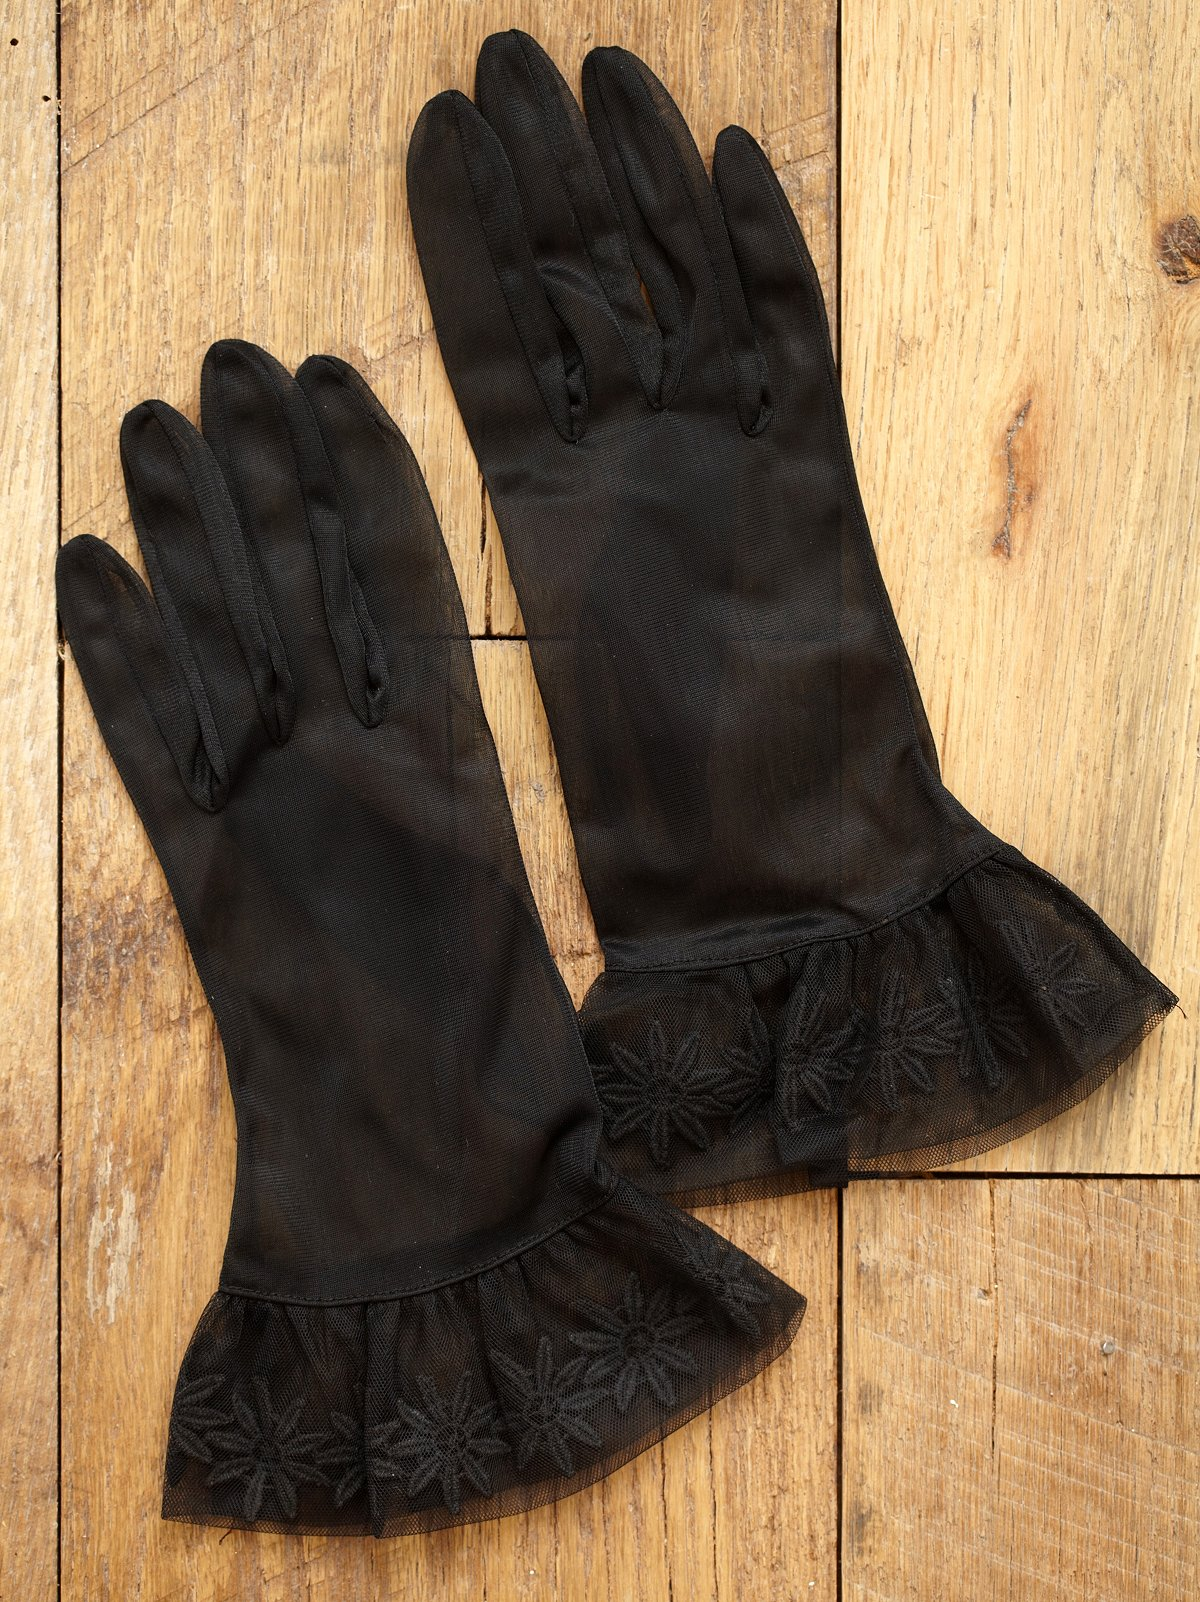 Vintage 1950s Black Sheer Gloves